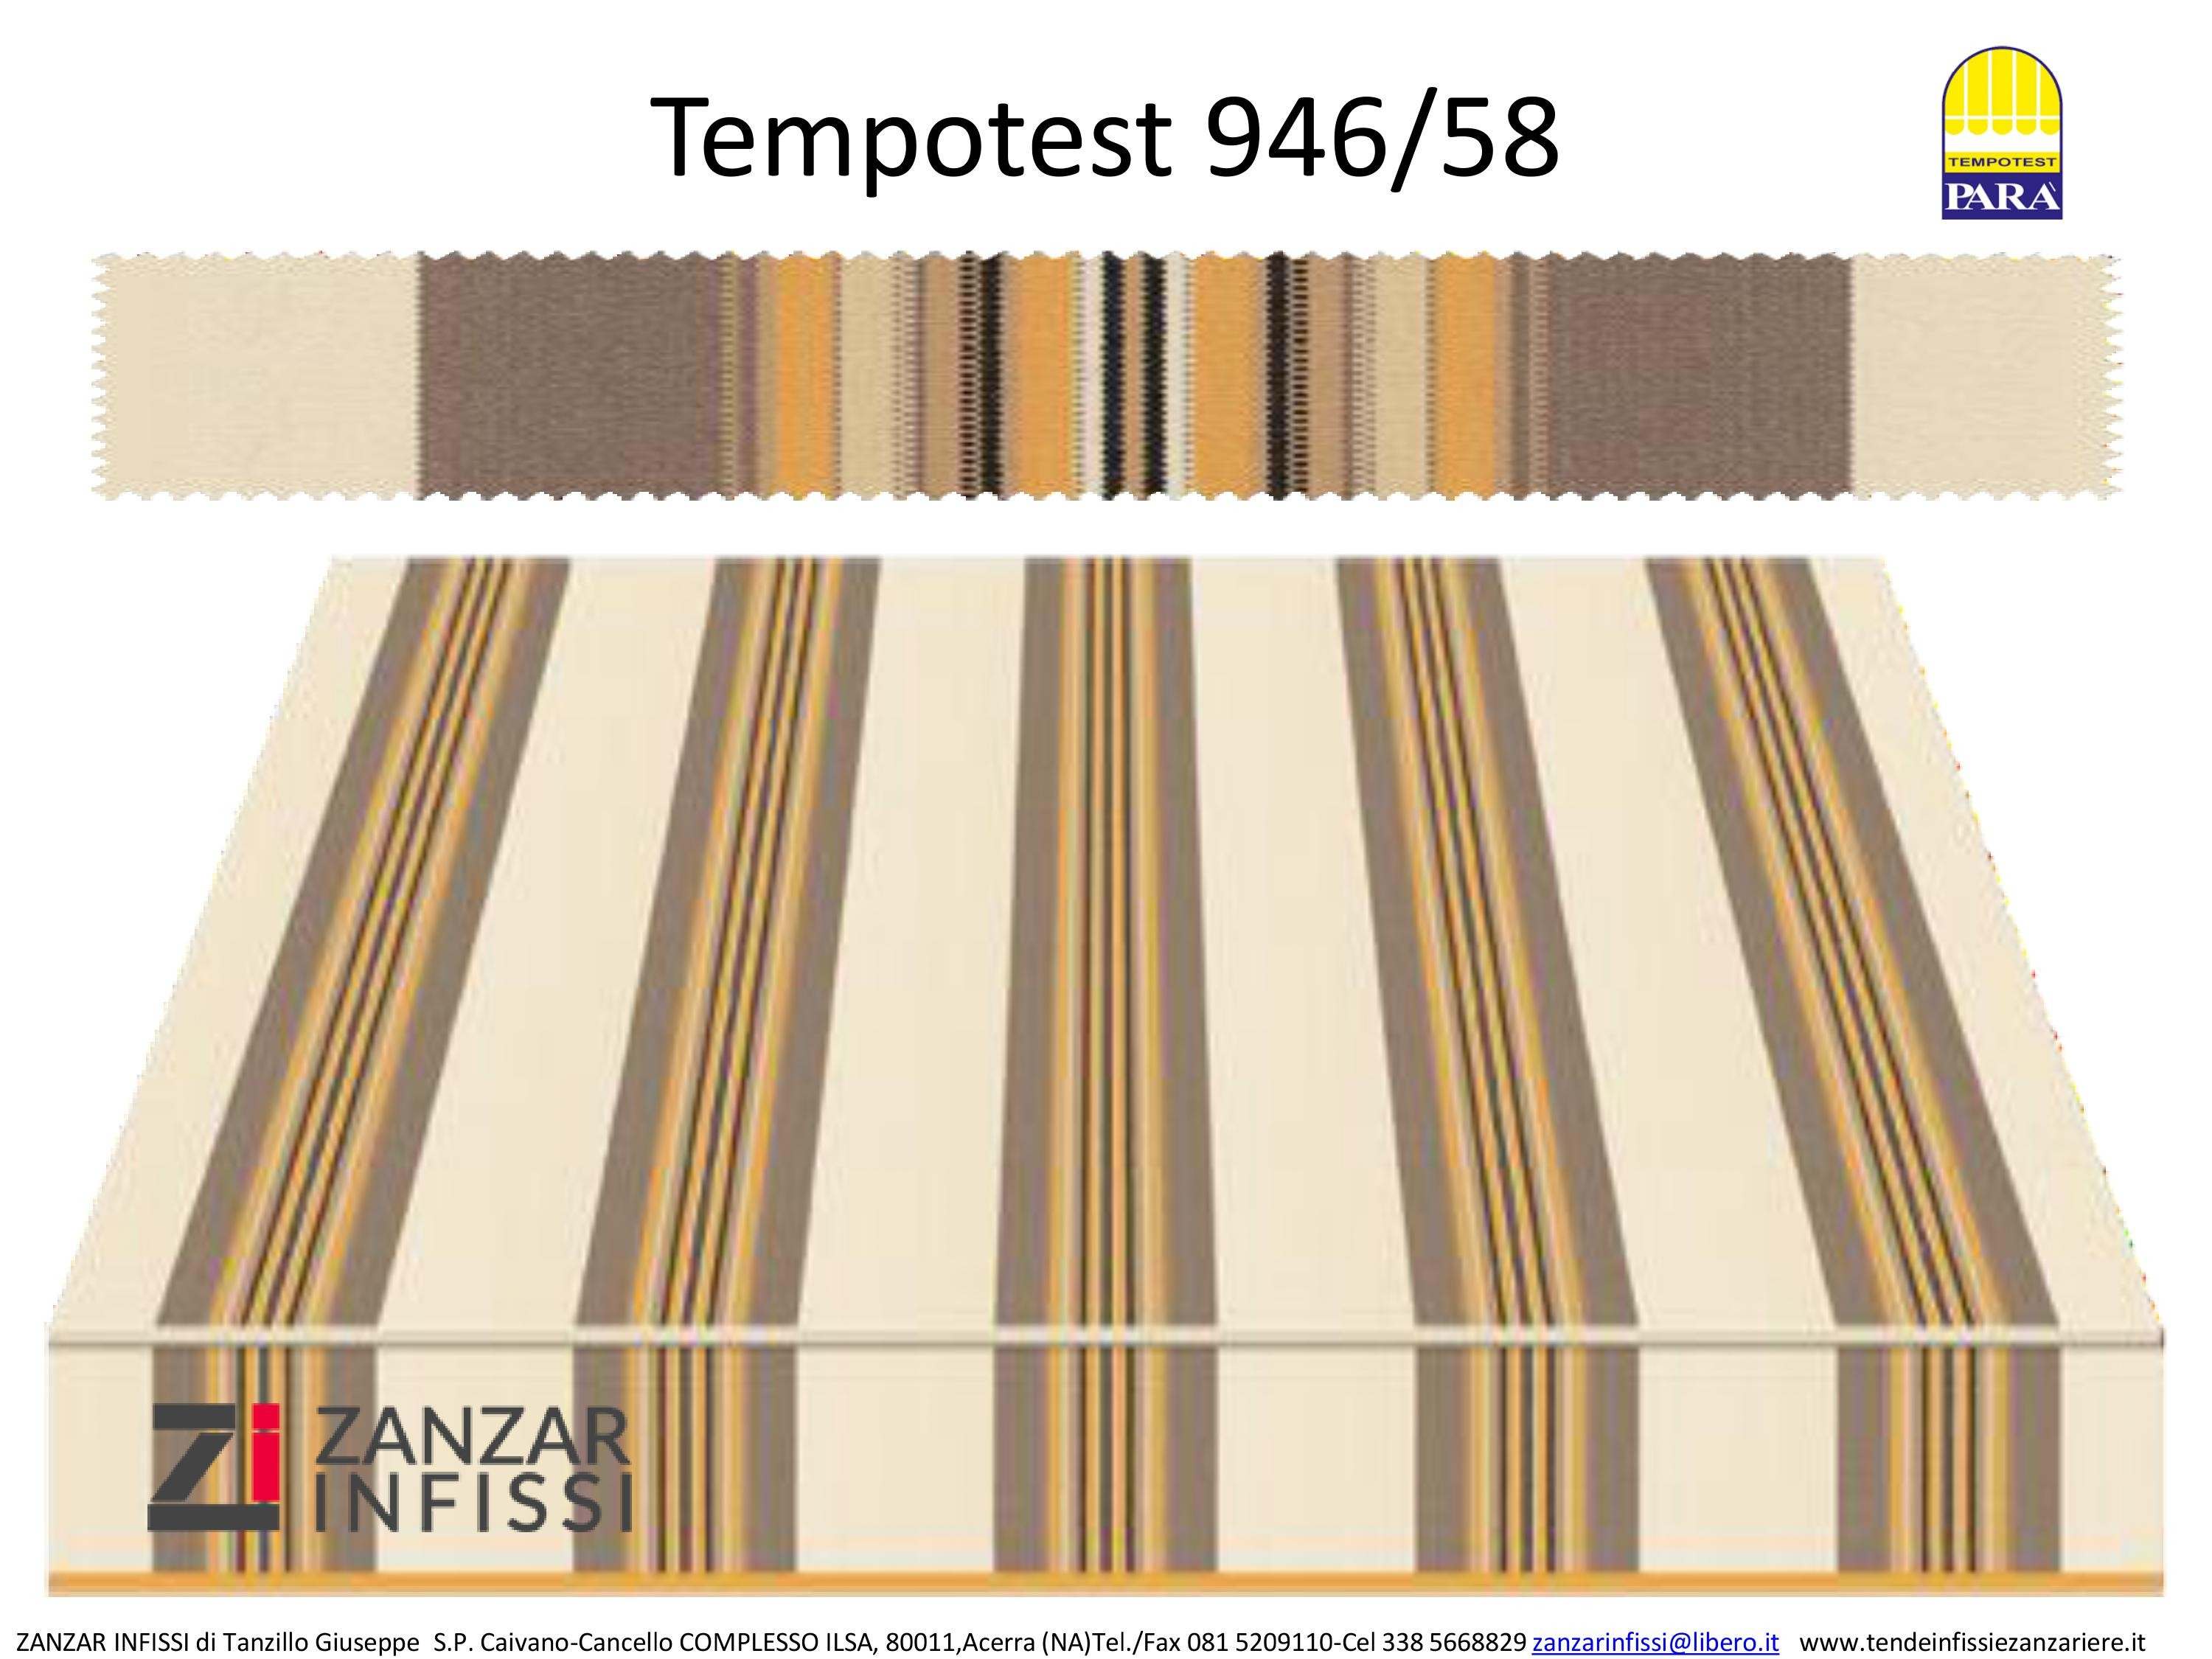 Tempotest 946/58